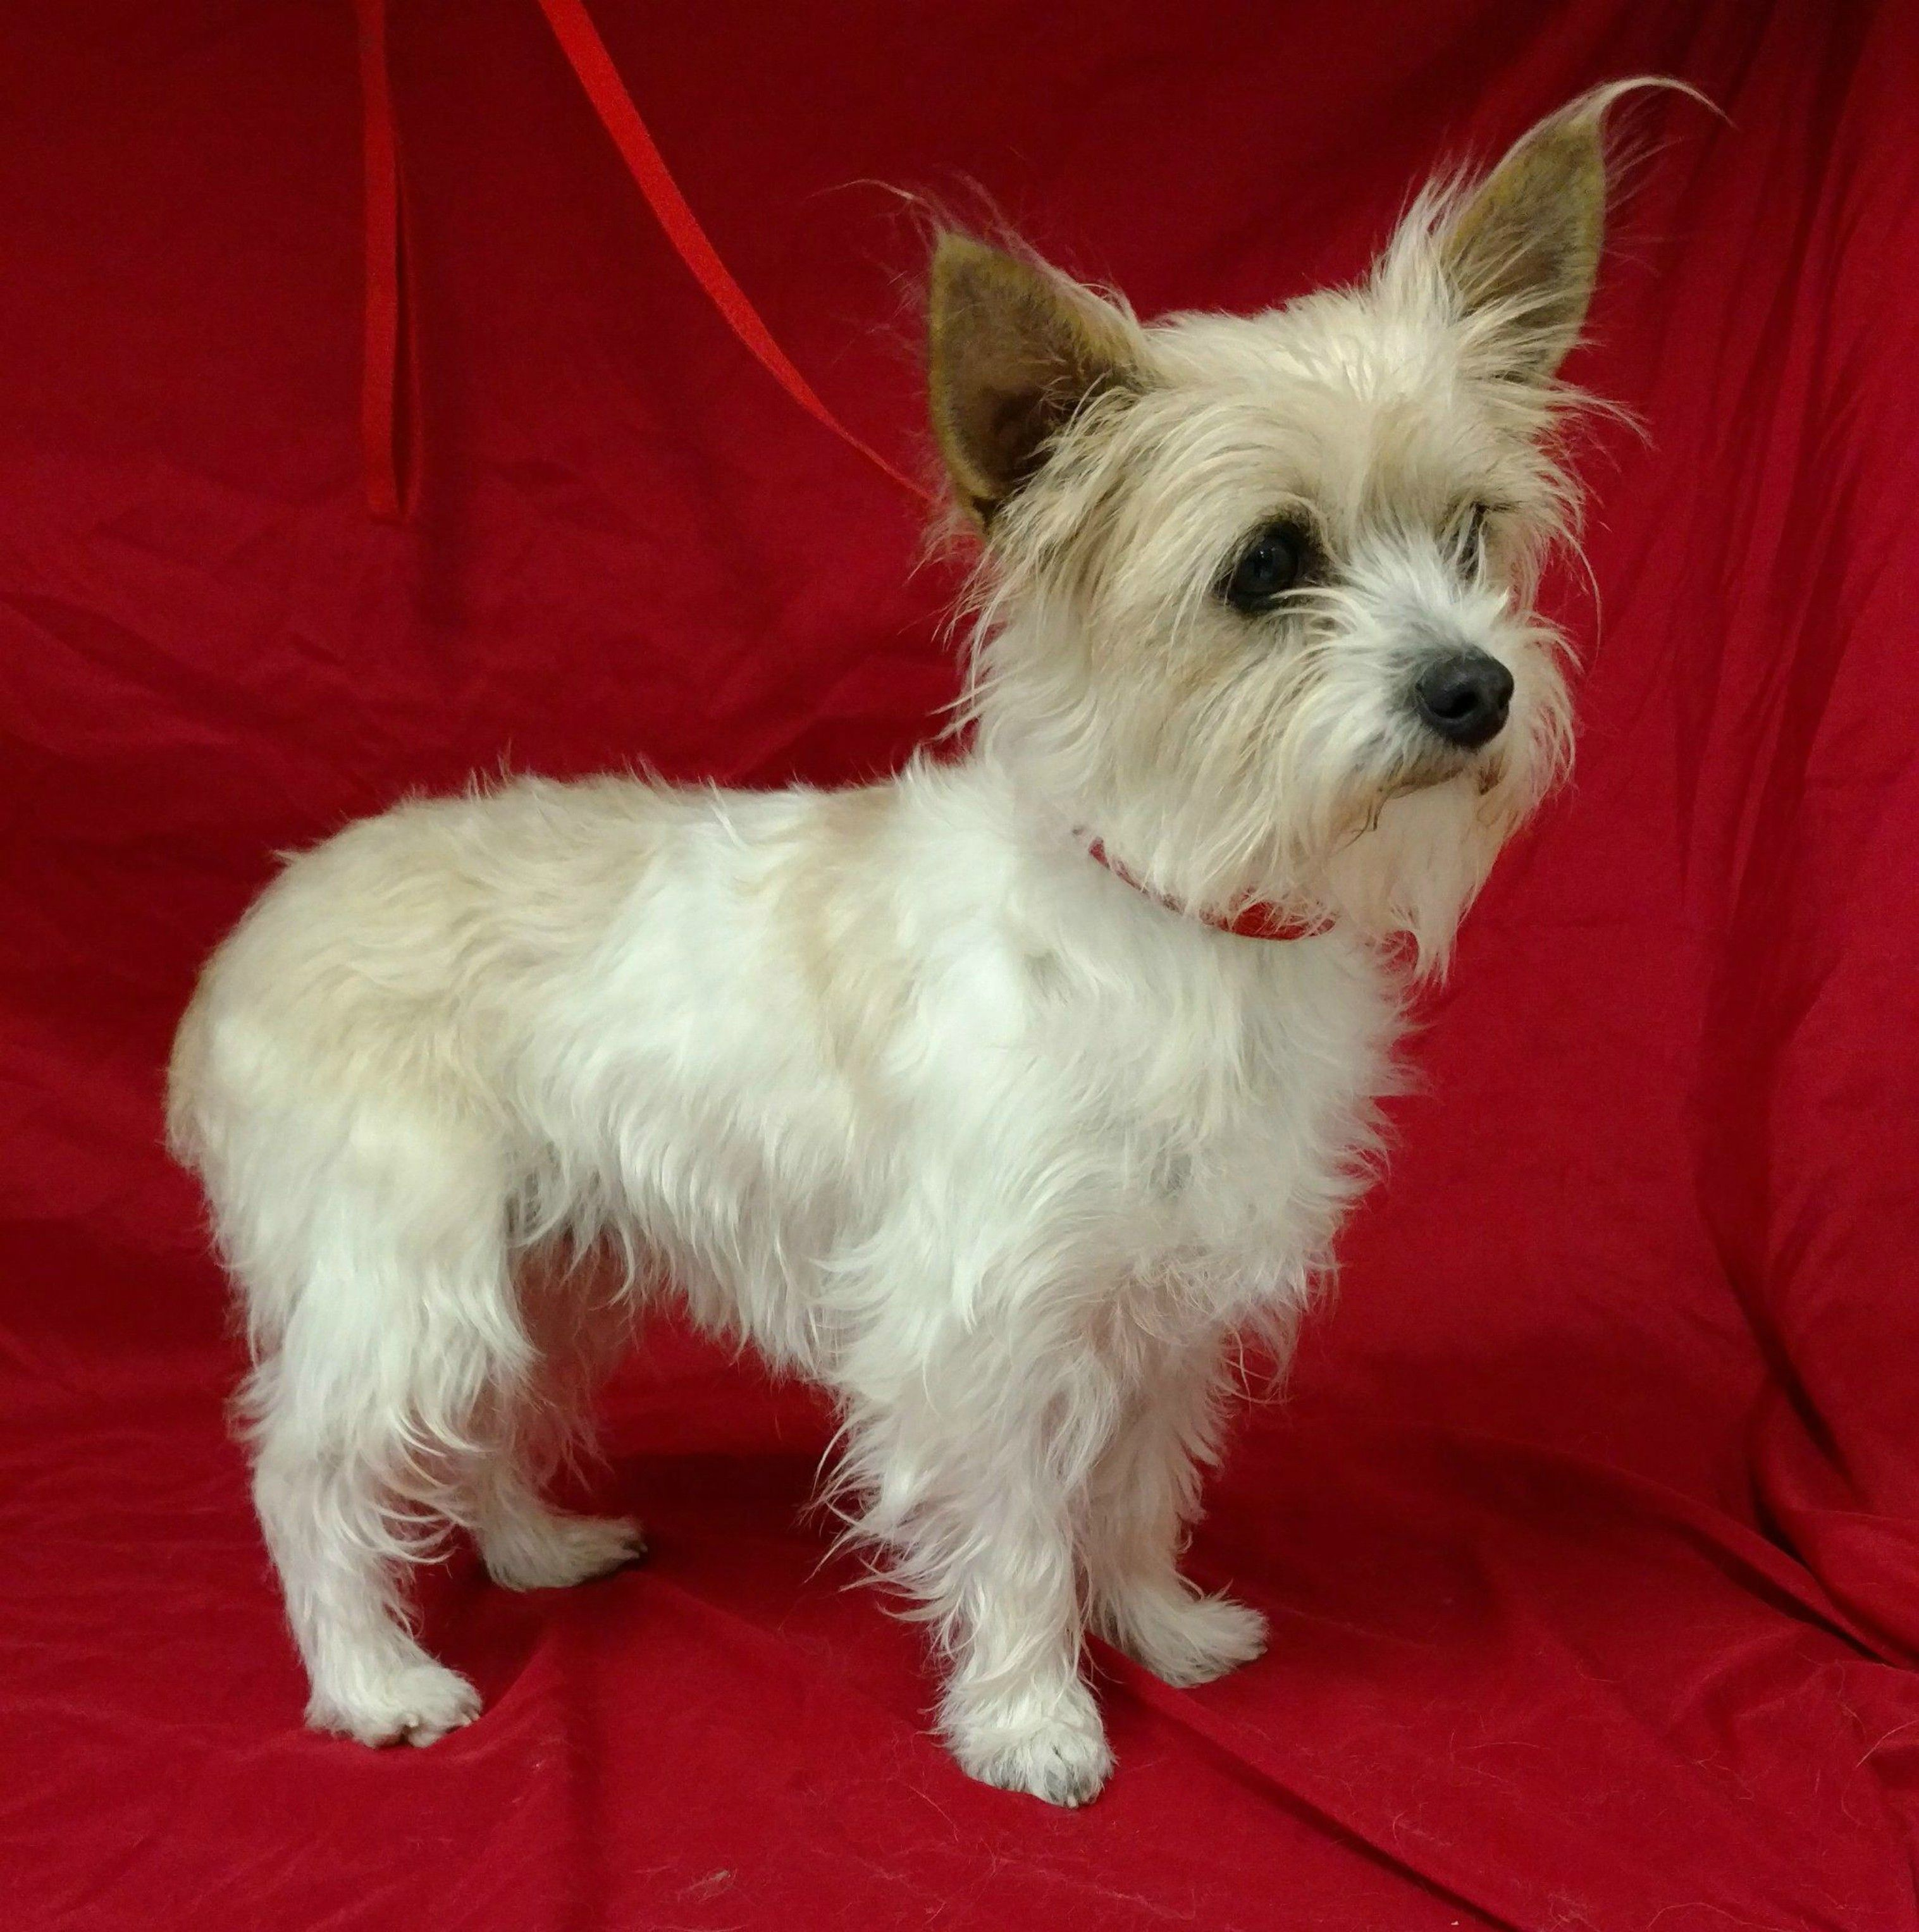 Pin By Record Searchlight Redding Com On Record Searchlight Pets Yorkshire Terrier Terrier Yorkshire Terrier Dog